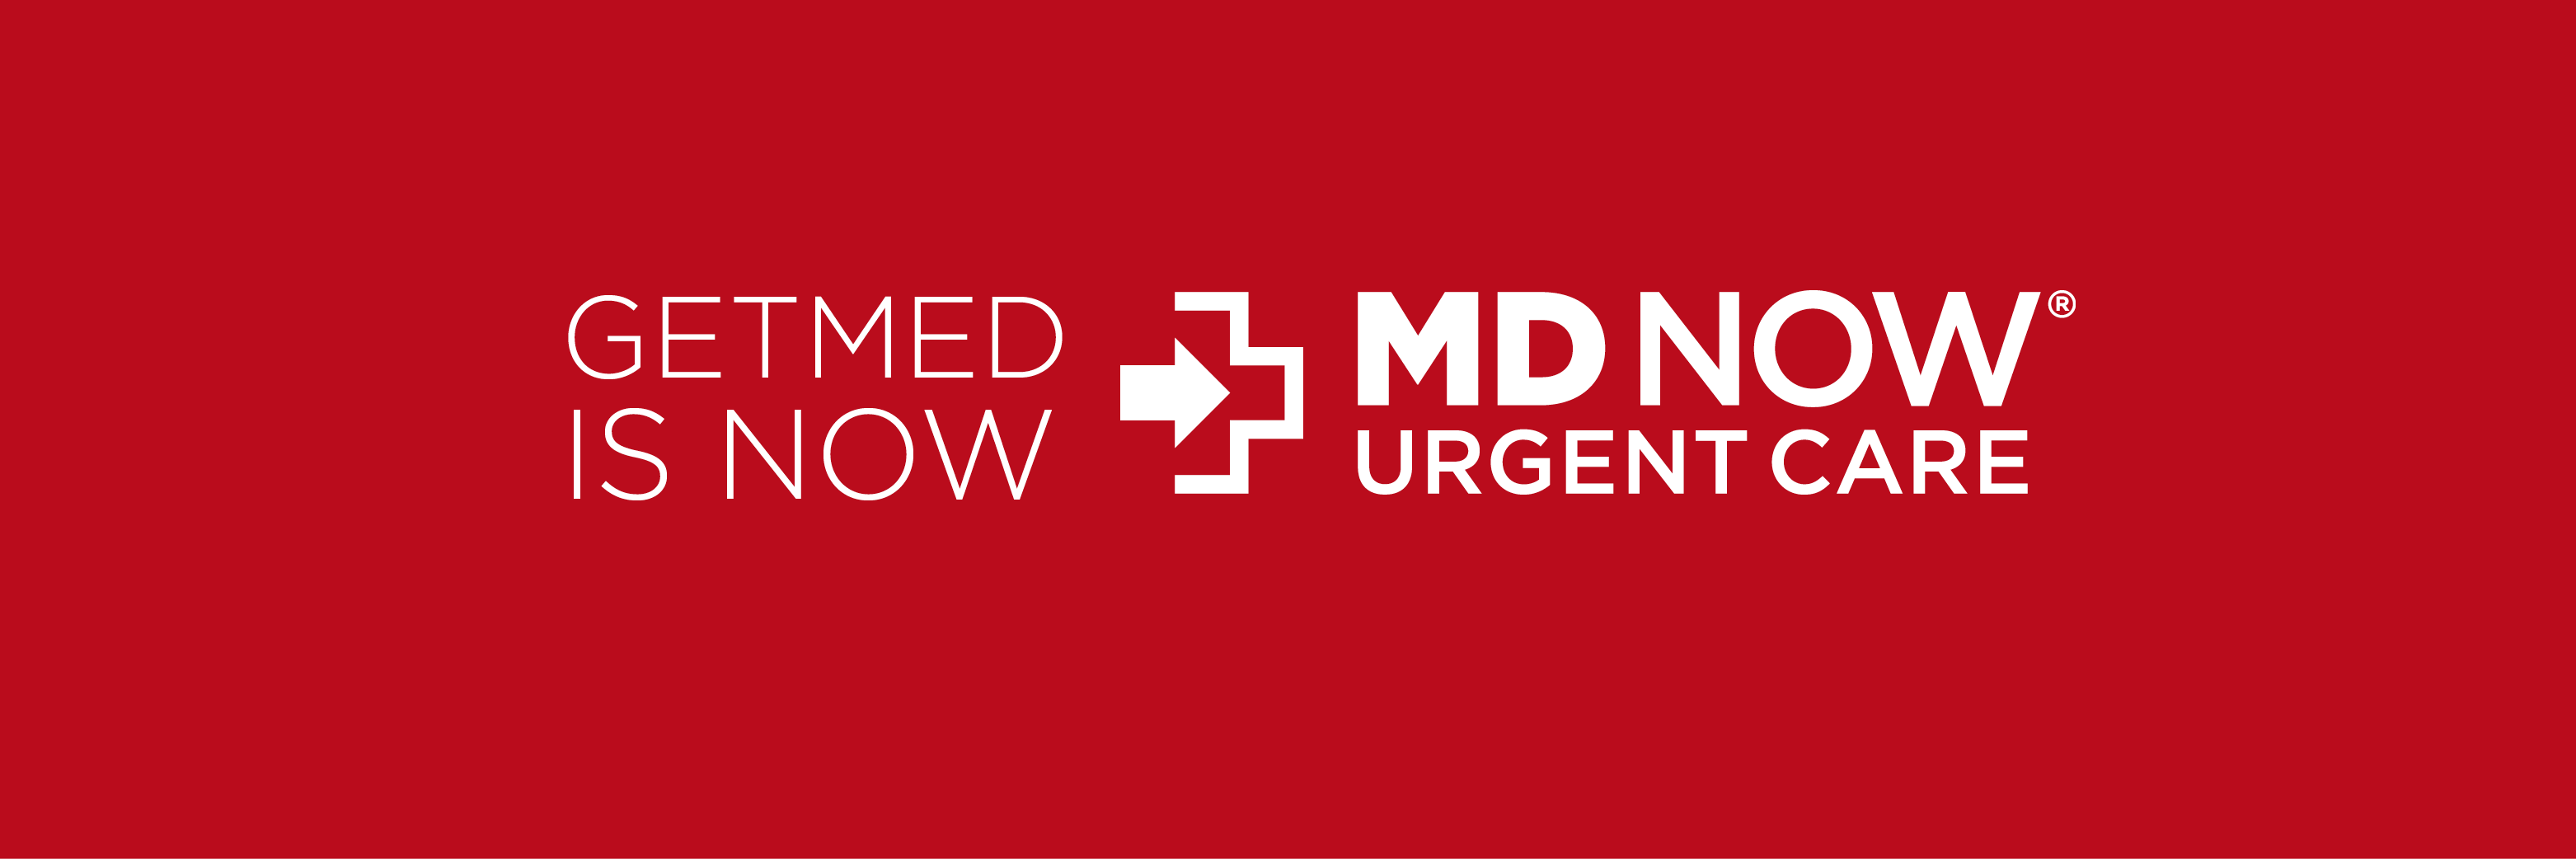 MD Now Urgent Care reviews | 7600 West Camino Real Suite 102 - Boca Raton FL